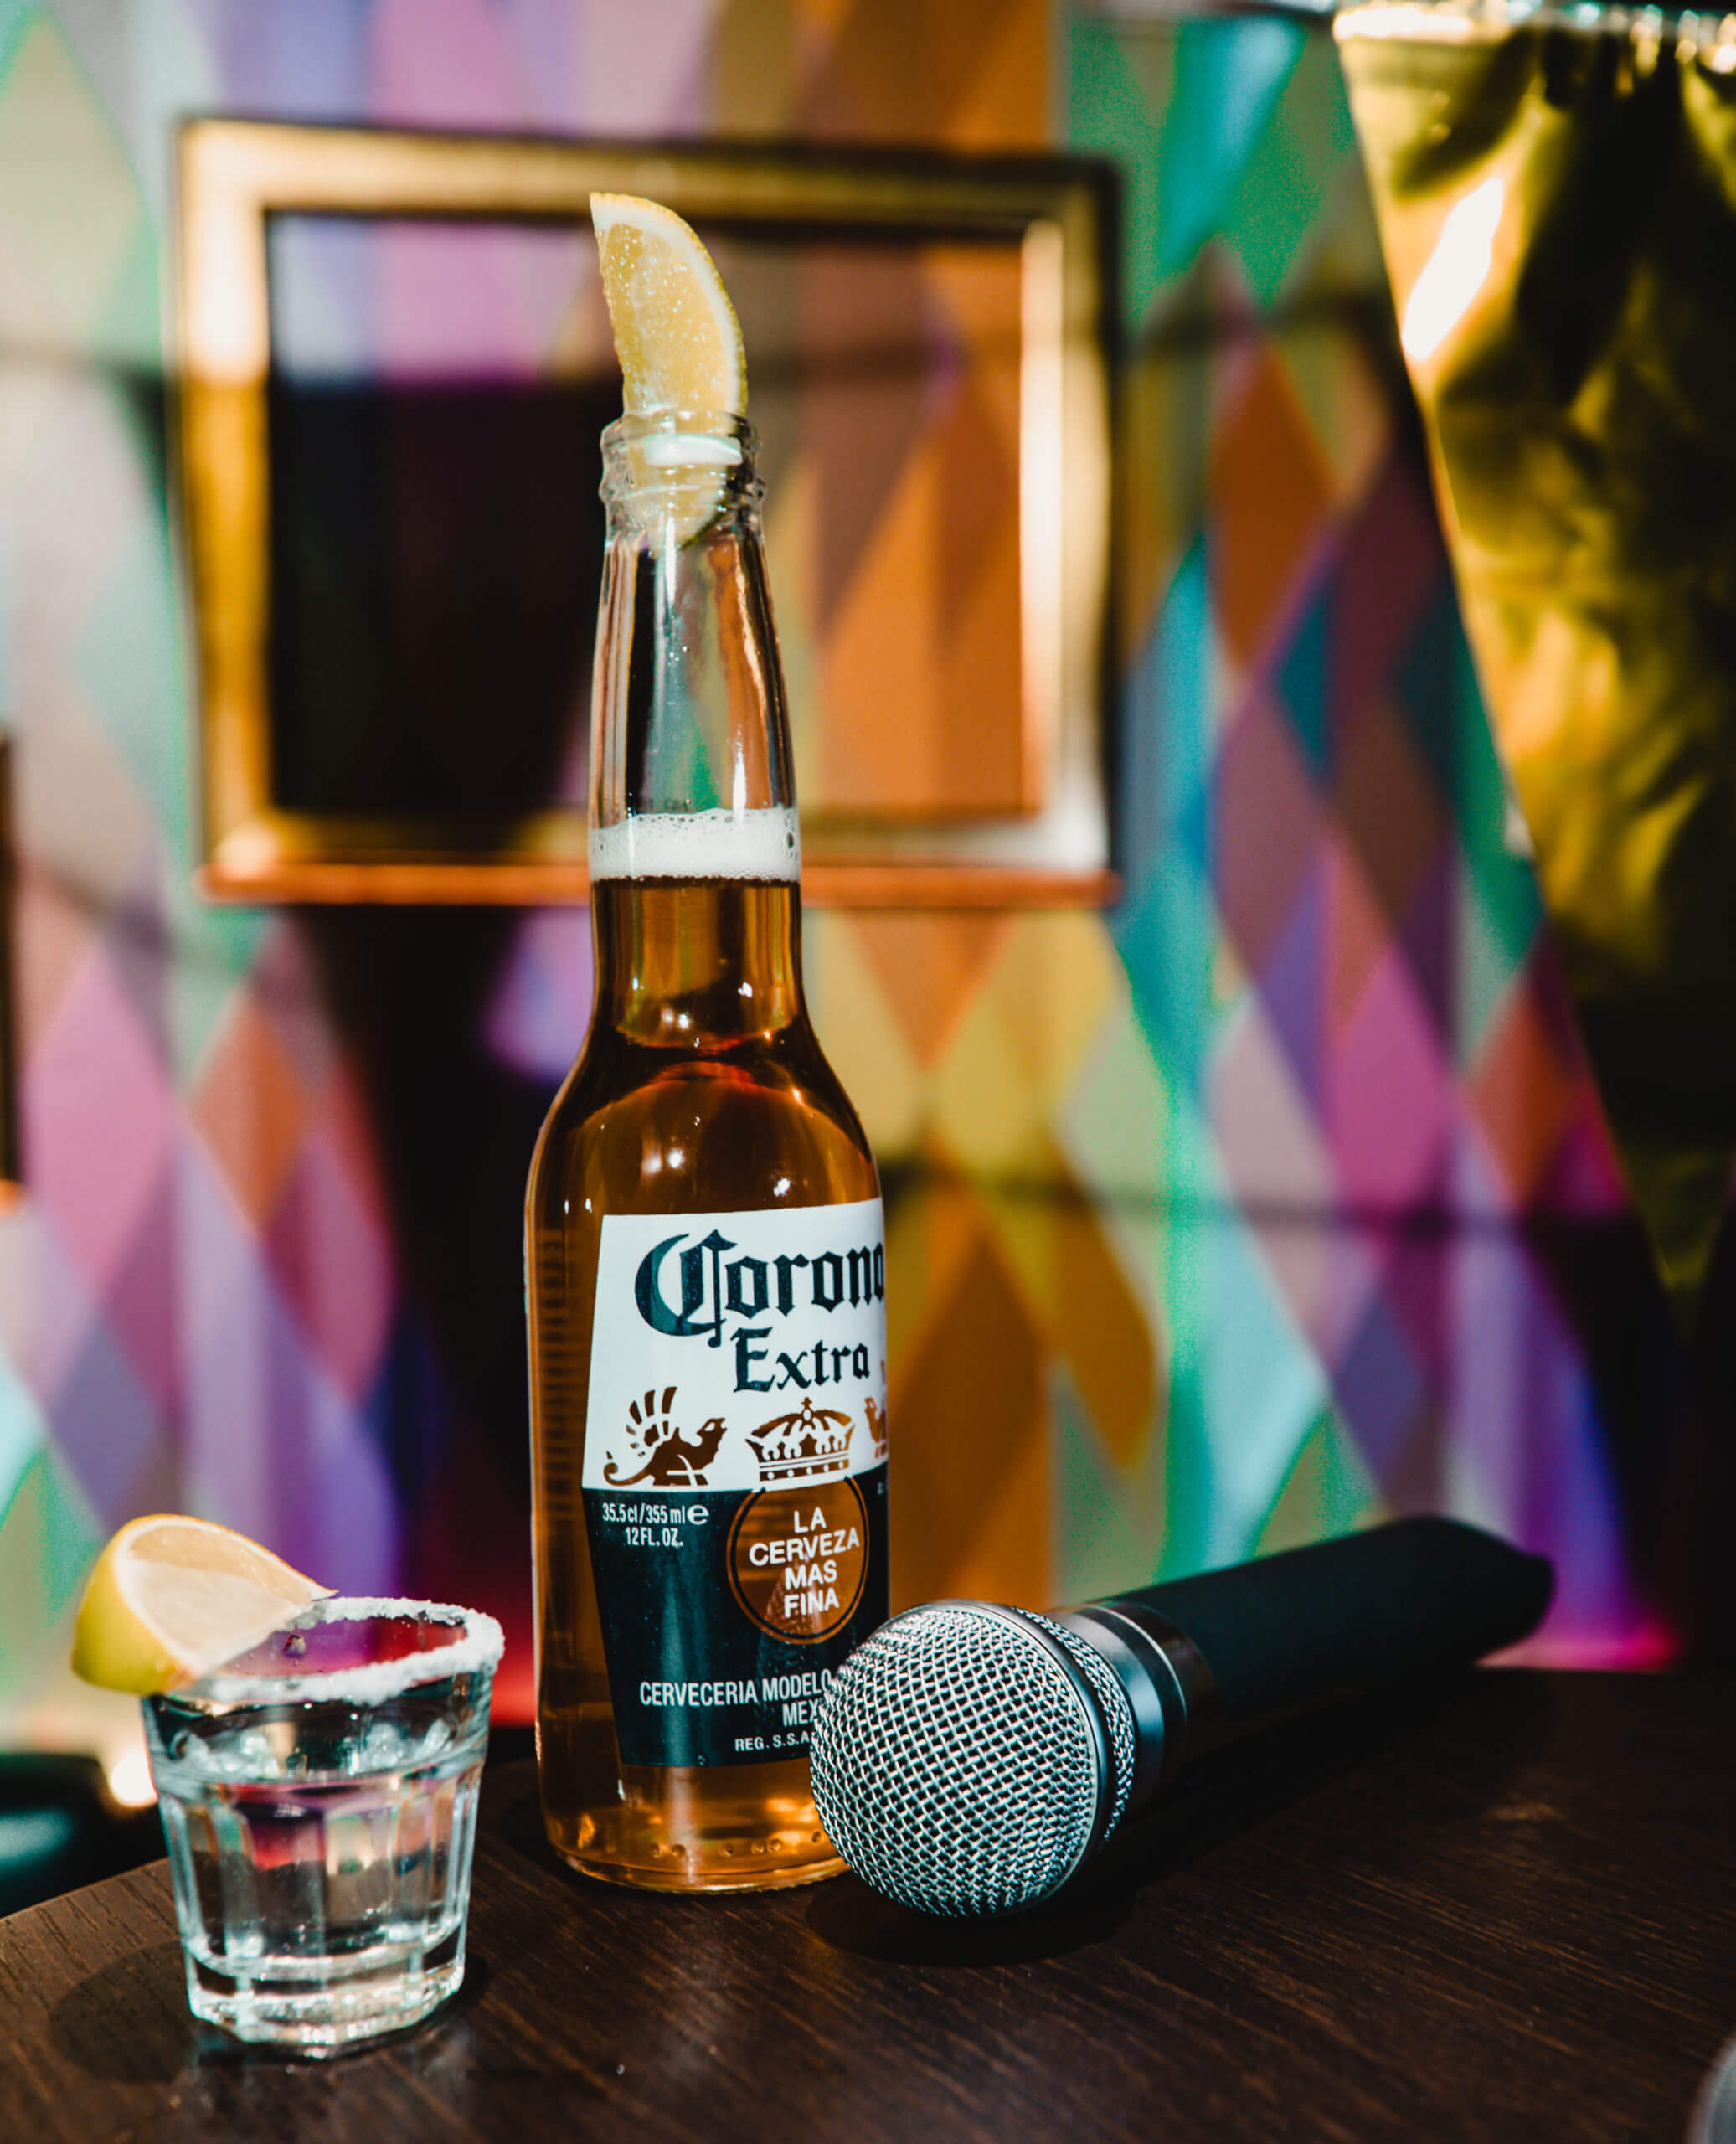 corona drink next to a microphone